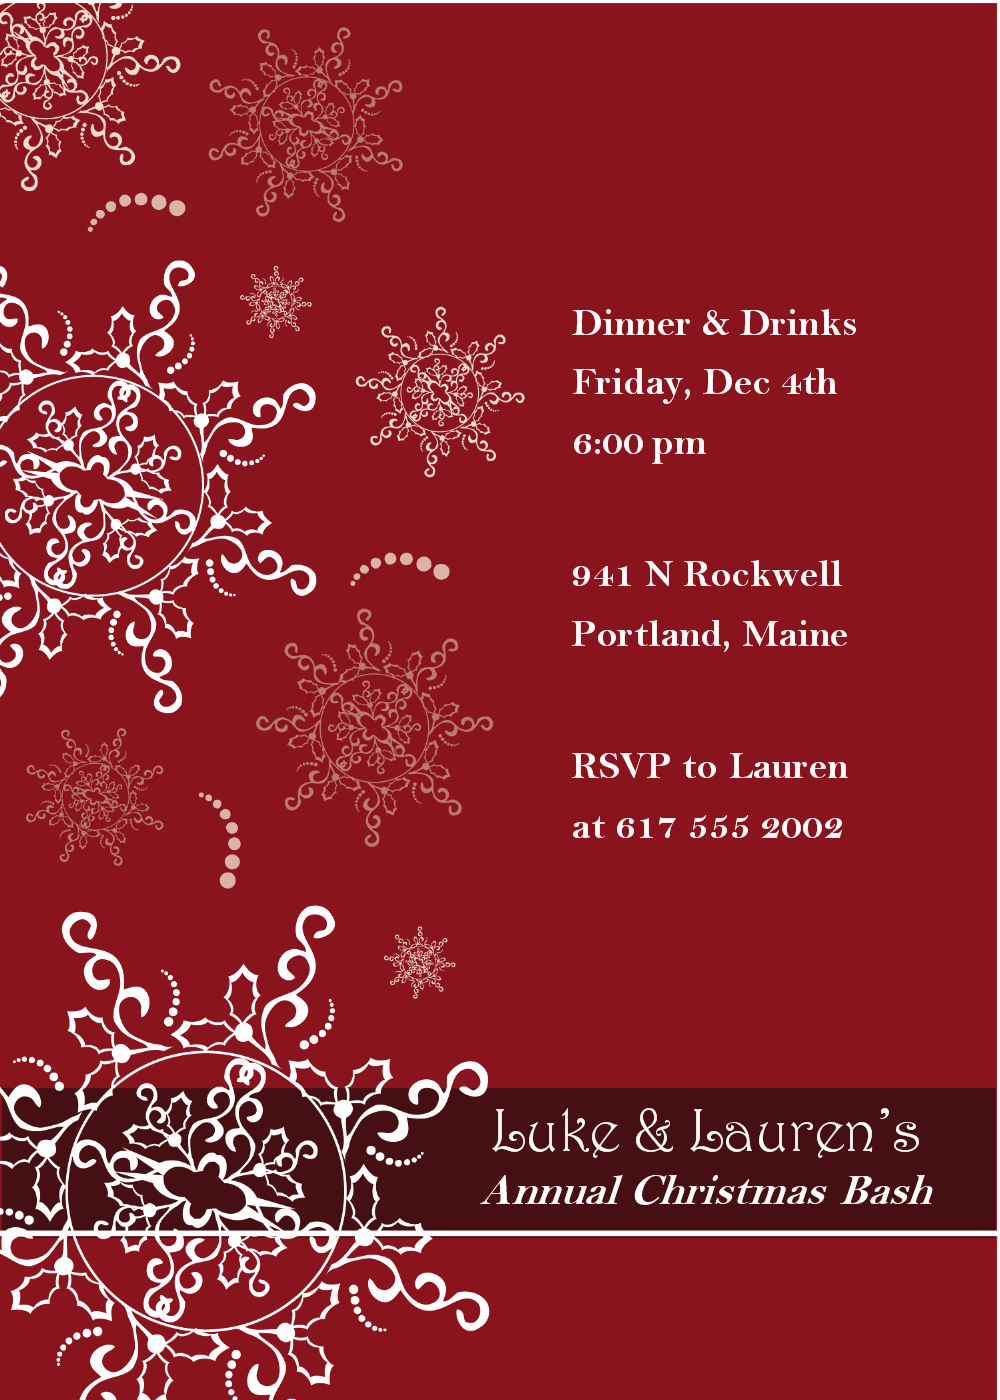 Free Holiday Party Templates Beautiful Christmas Party Invitation Templates Bing